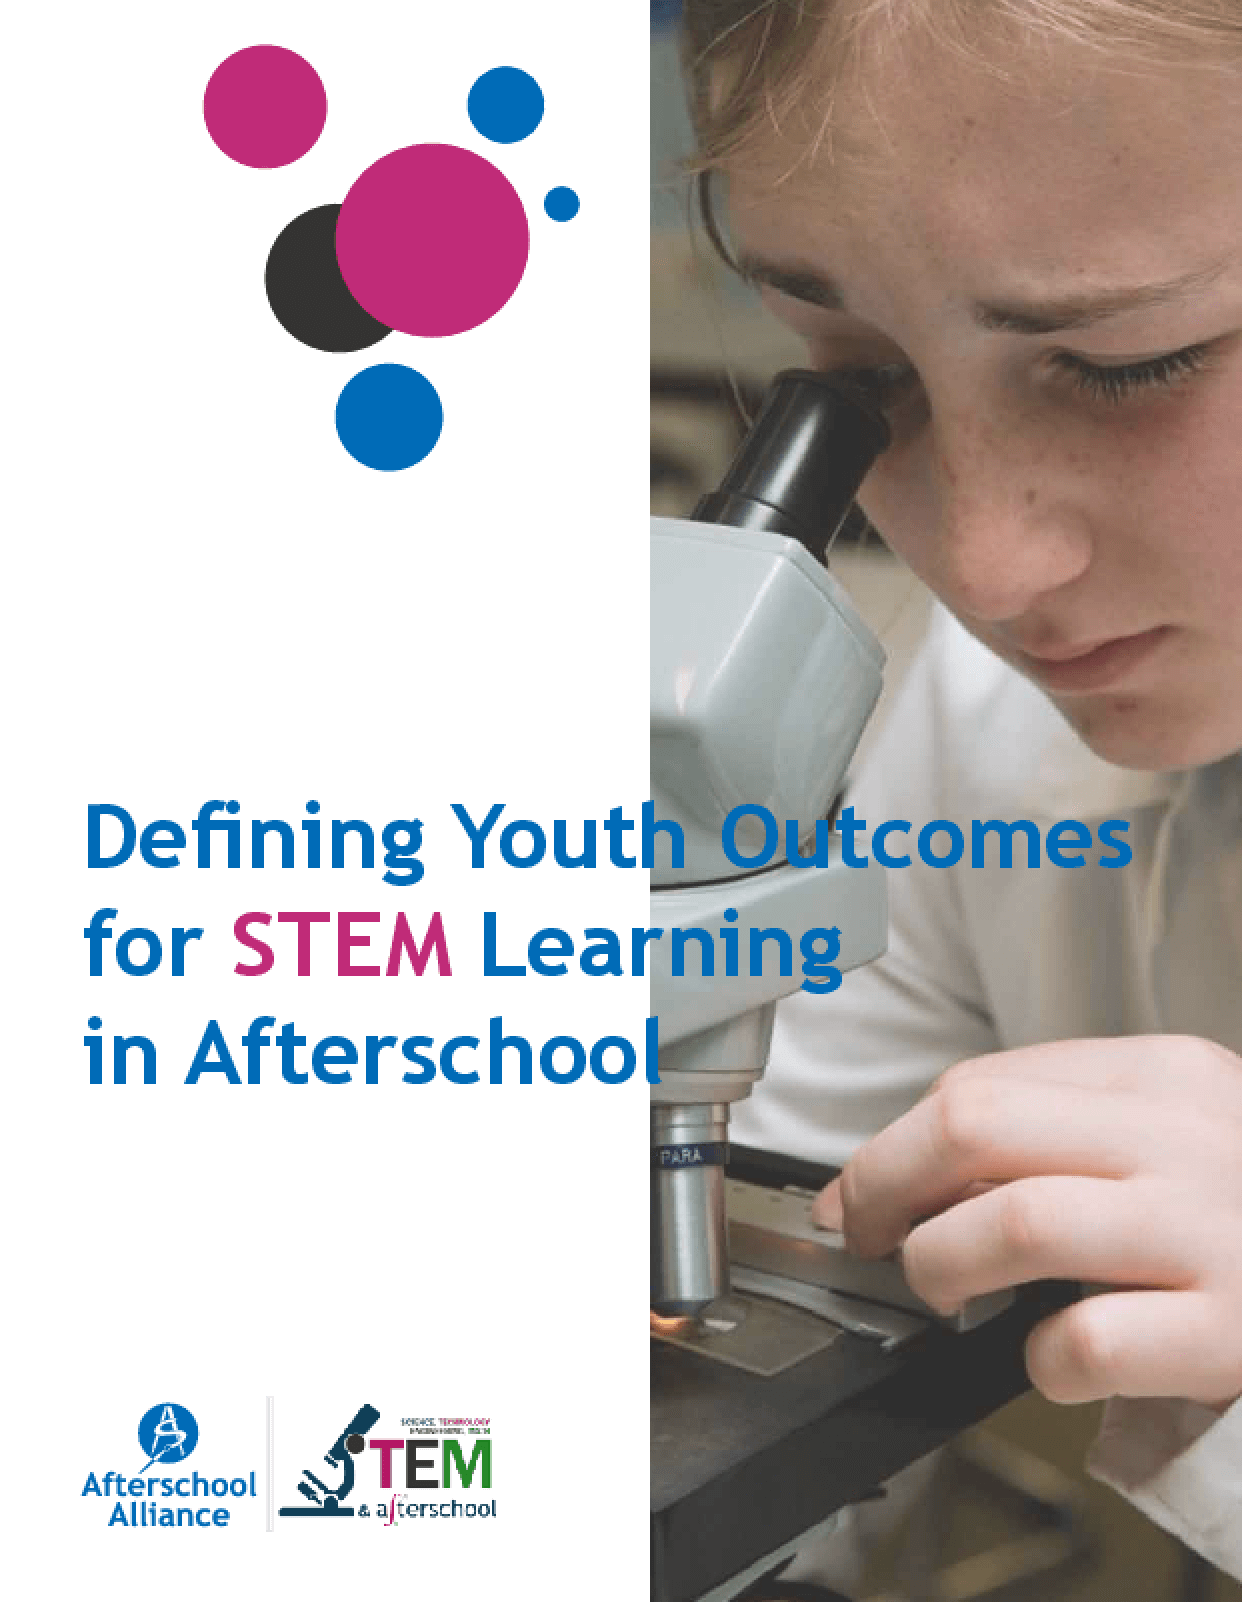 Defining Youth Outcomes for STEM Learning in Afterschool